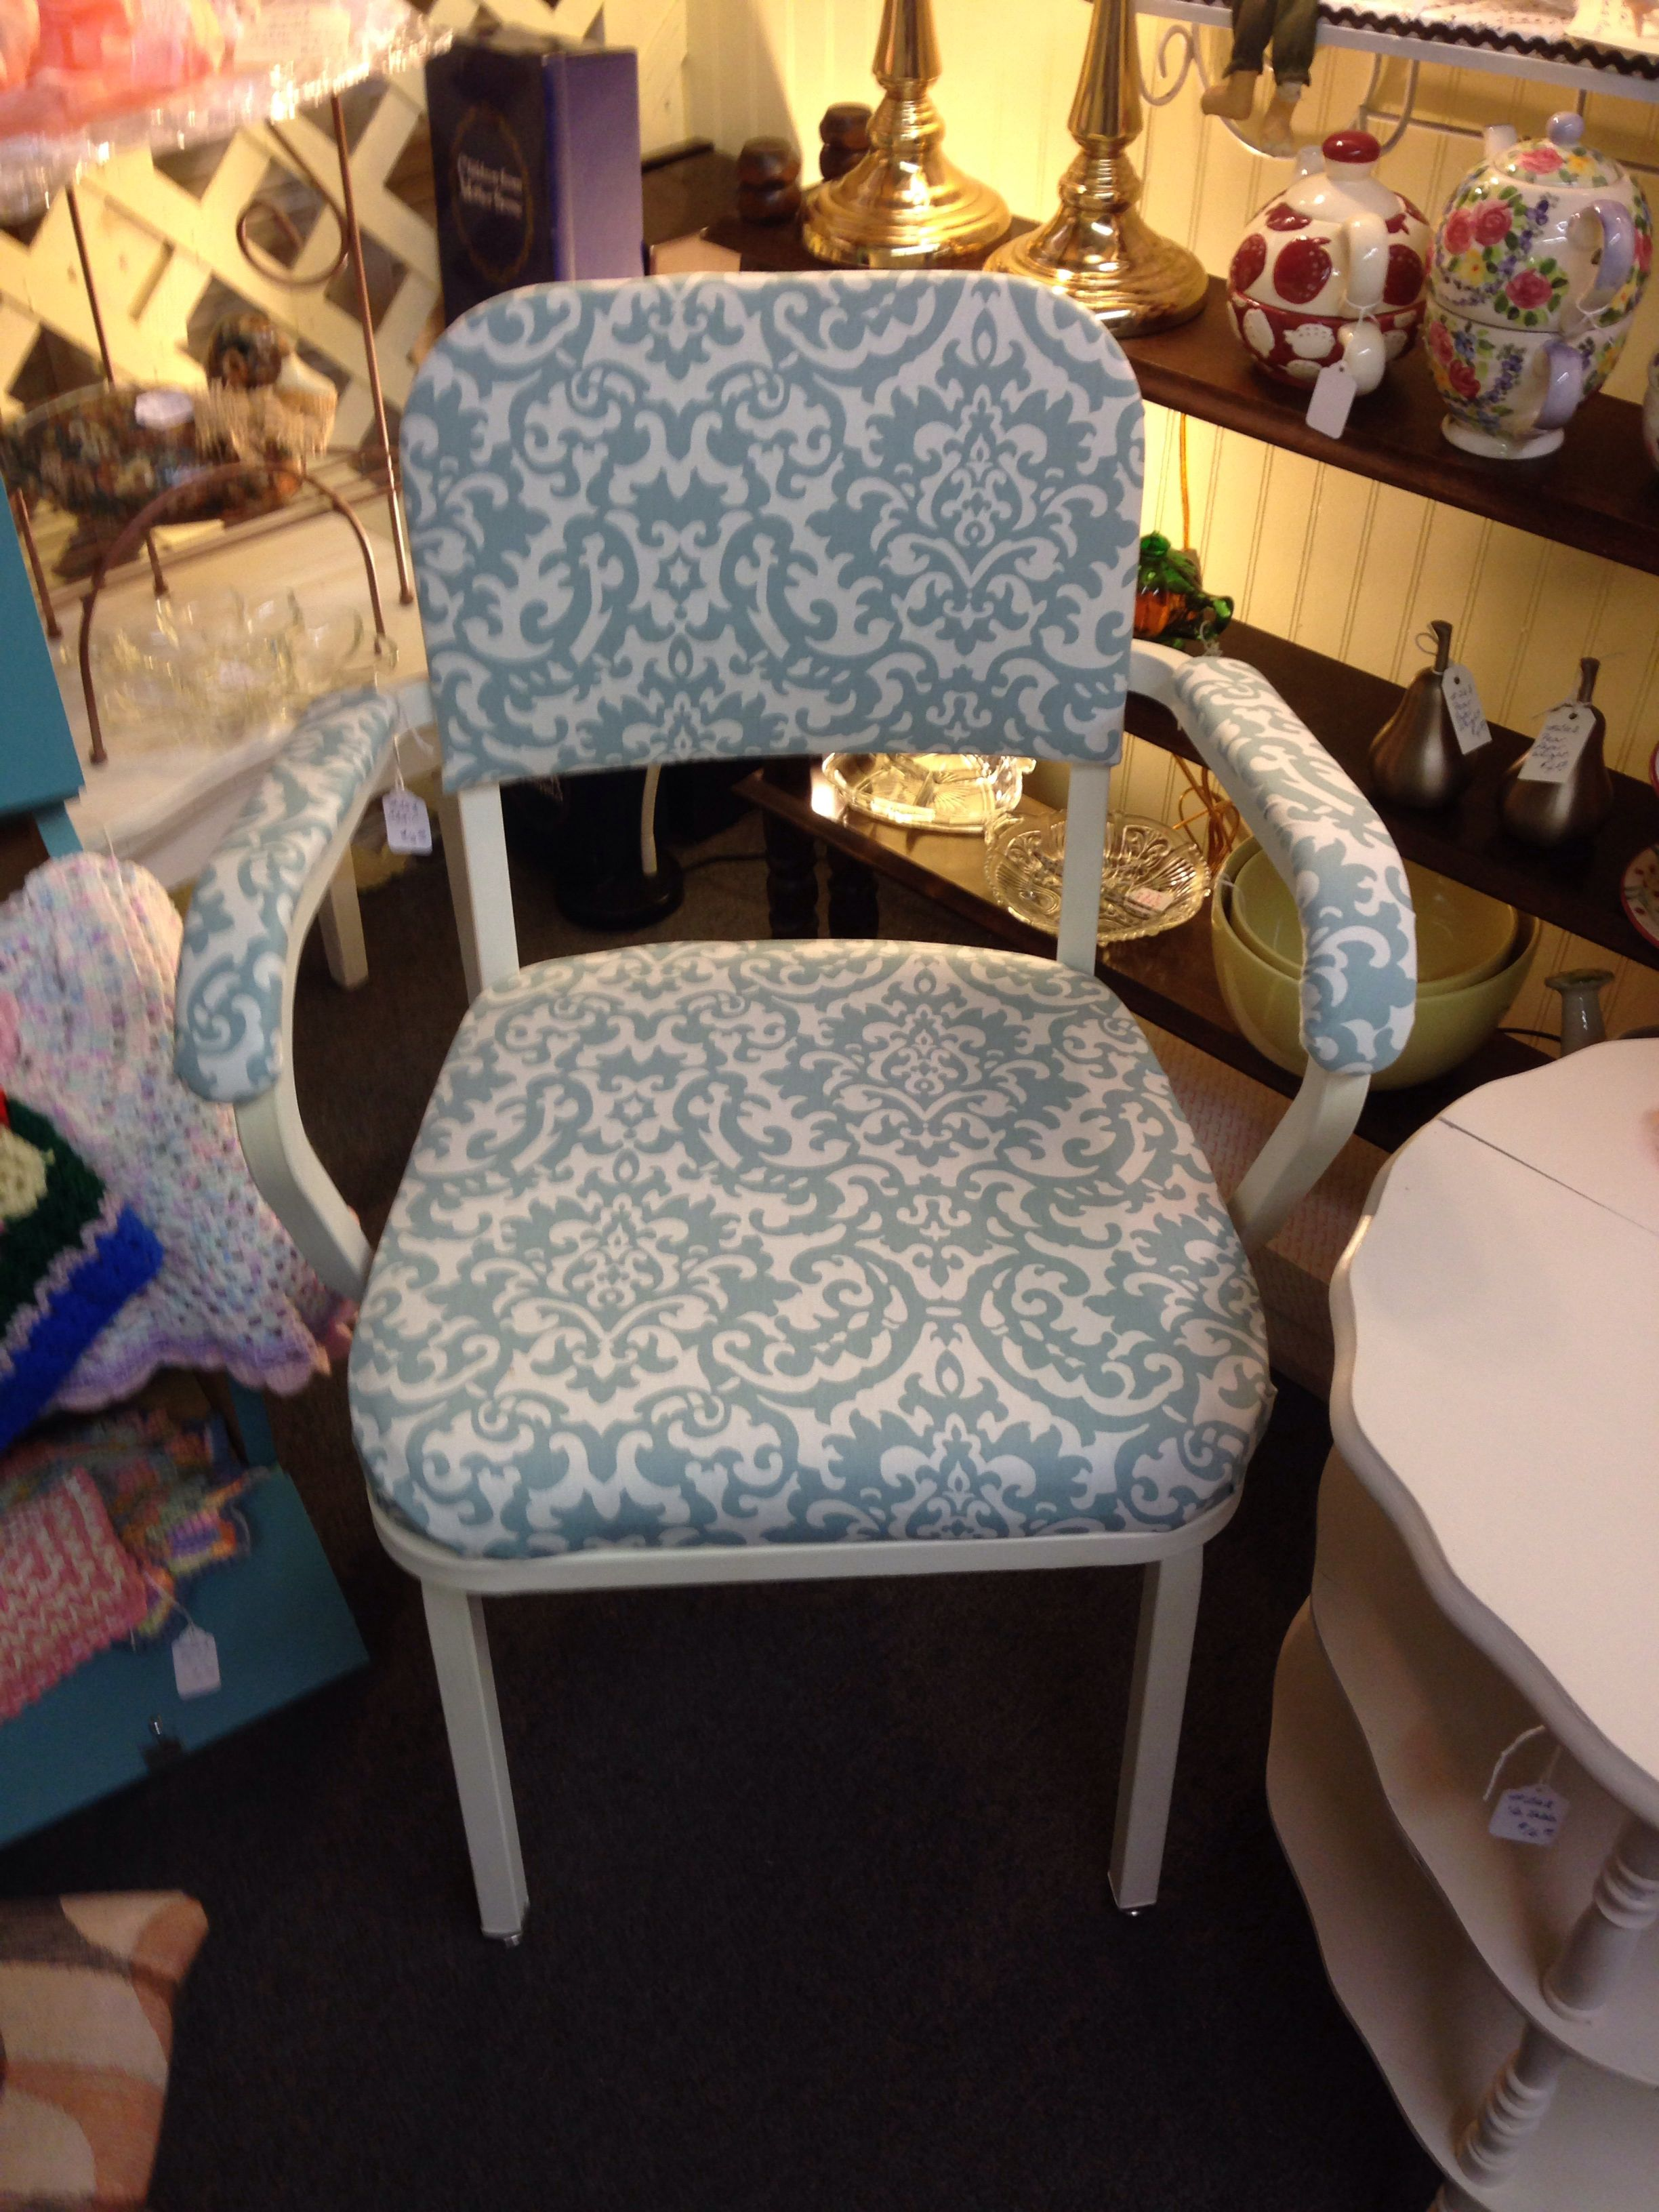 Super cute metal office chair reupholstered to give it some elegant style!! Only 16 from vendor 263!!